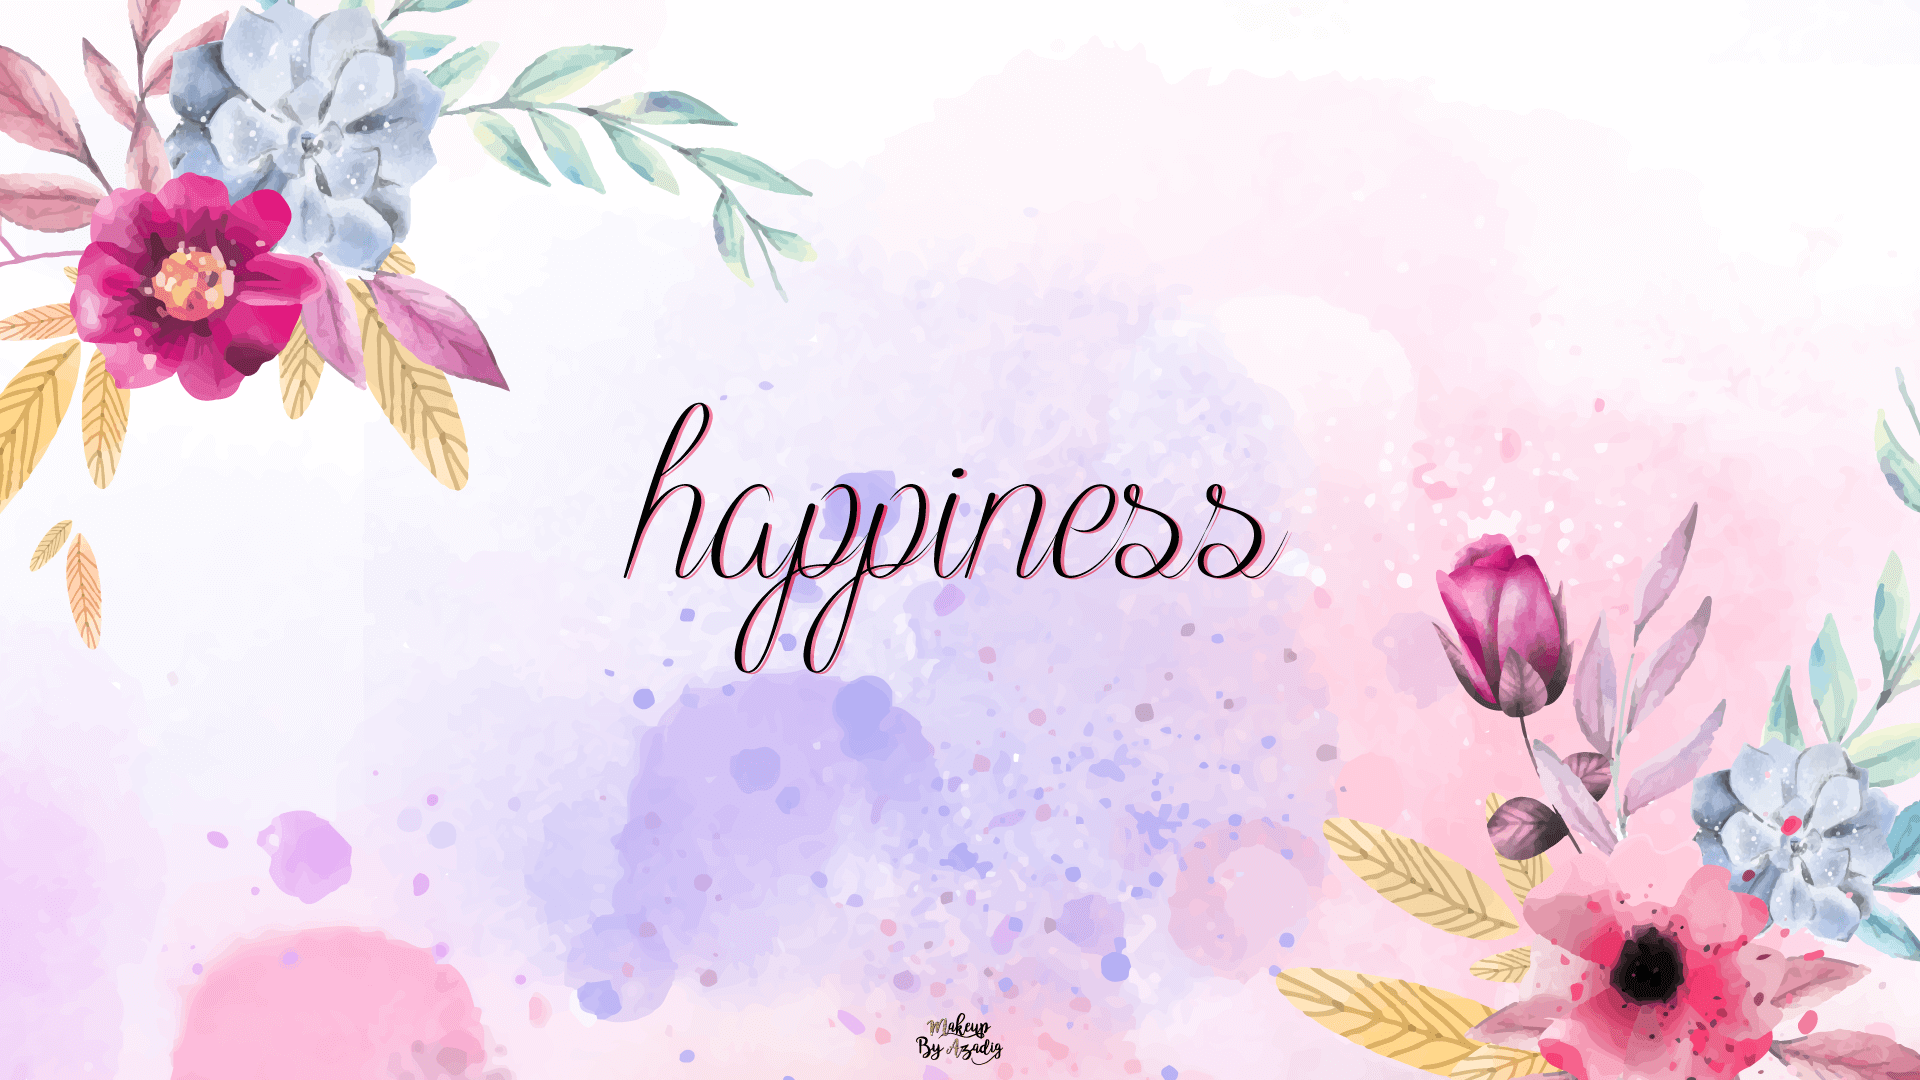 5 Fond D Ecran Happiness Flowers Wallpaper Makeupbyazadig